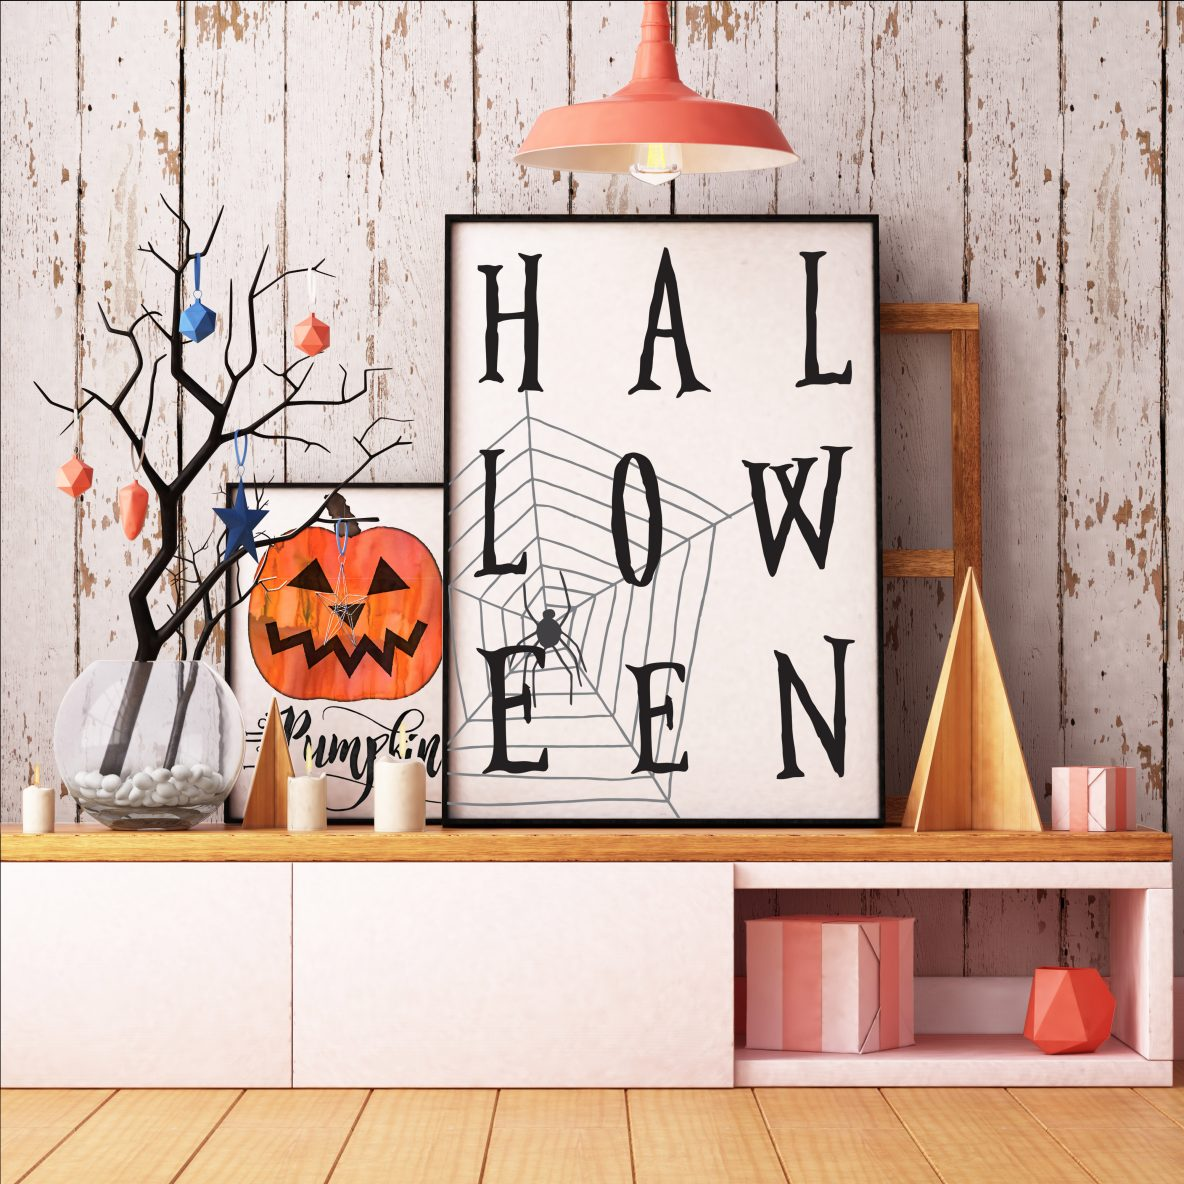 Two Halloween prints with orange and blue decorations around them.